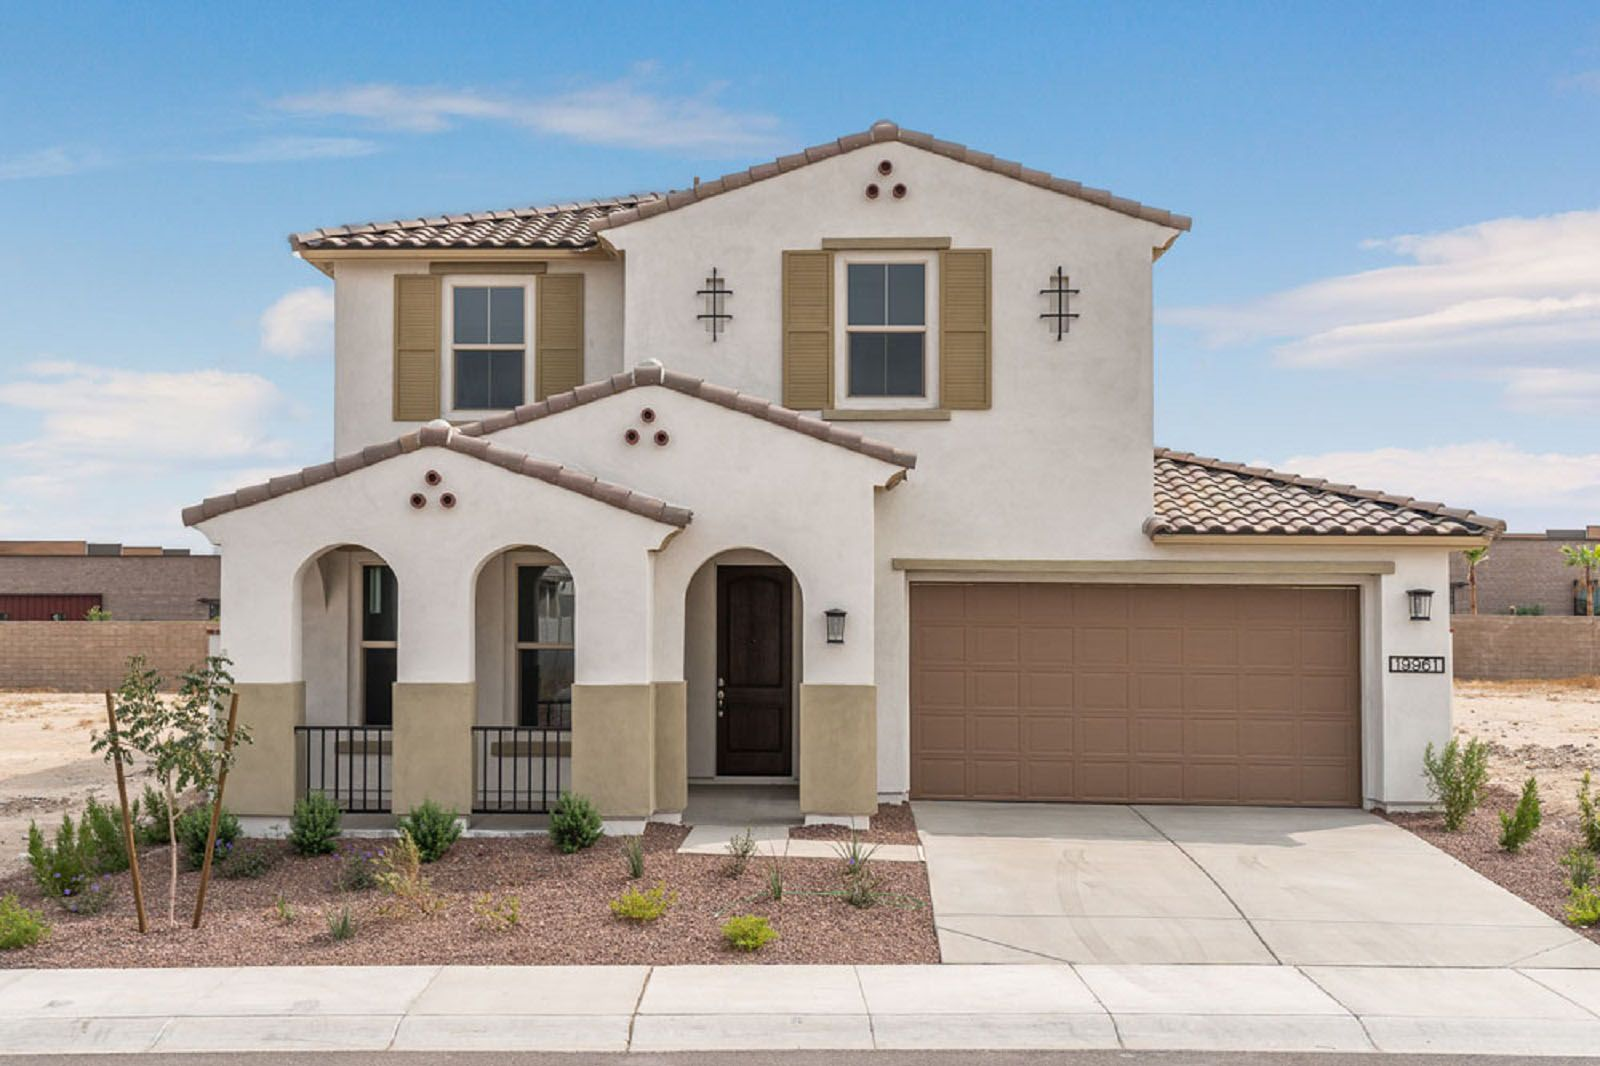 The Front Exterior of a Sierra, a new home for sale in Buckeye, Arizona from William Ryan Homes A...:Sierra Quick Move-In Home - Open Concept Floor Plan - Front Exterior